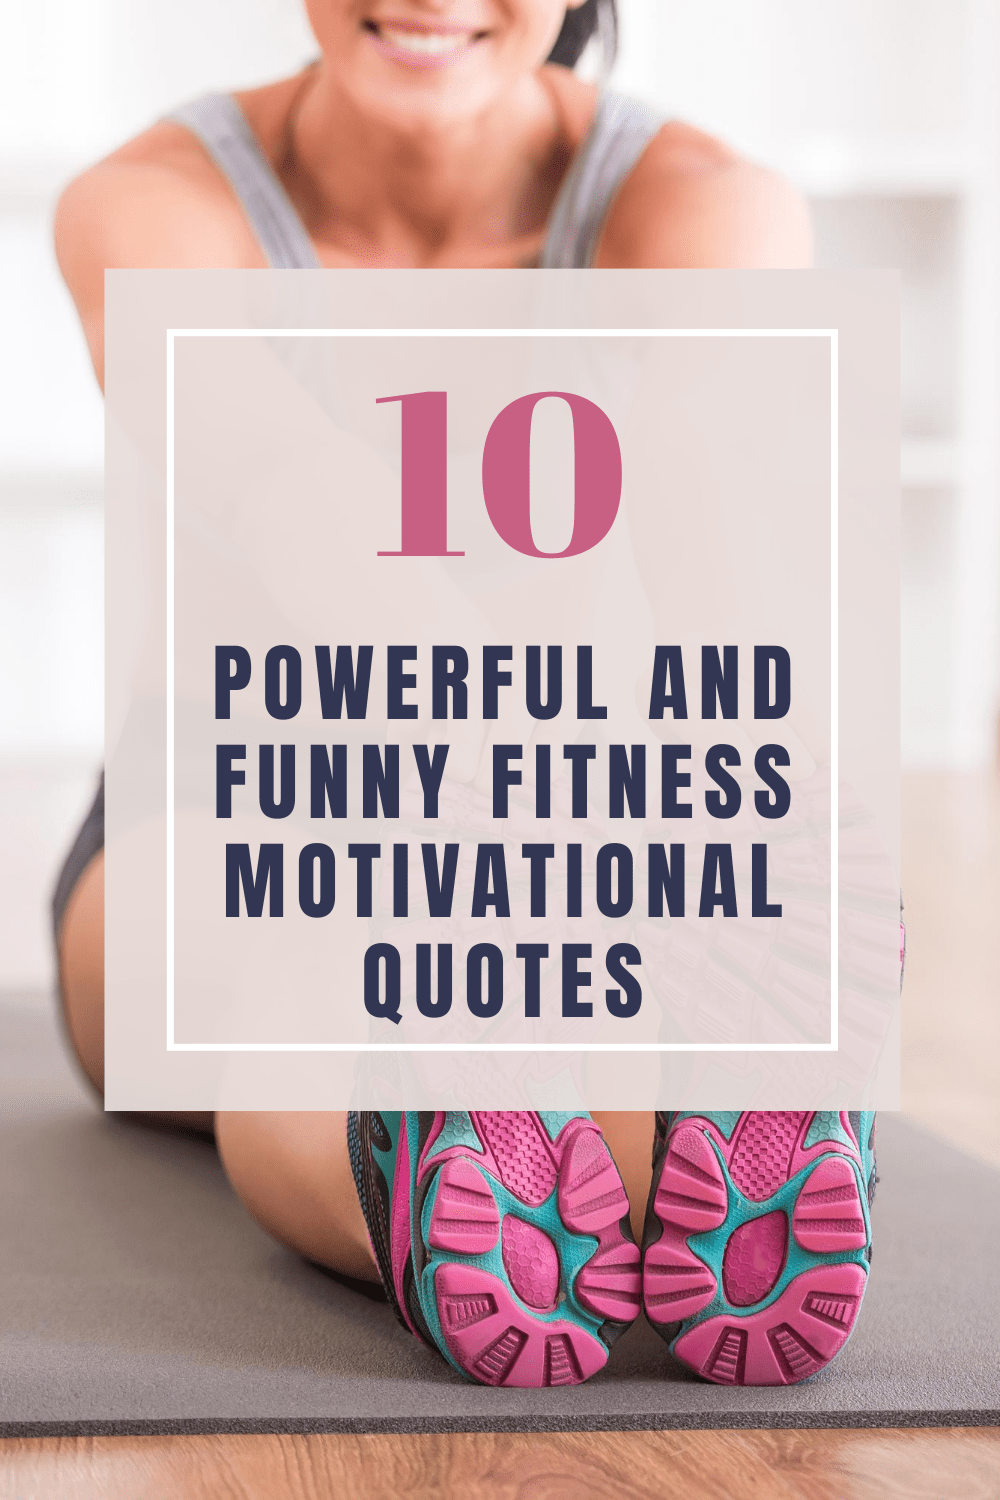 Powerful And Funny Fitness Motivational Quotes For Women